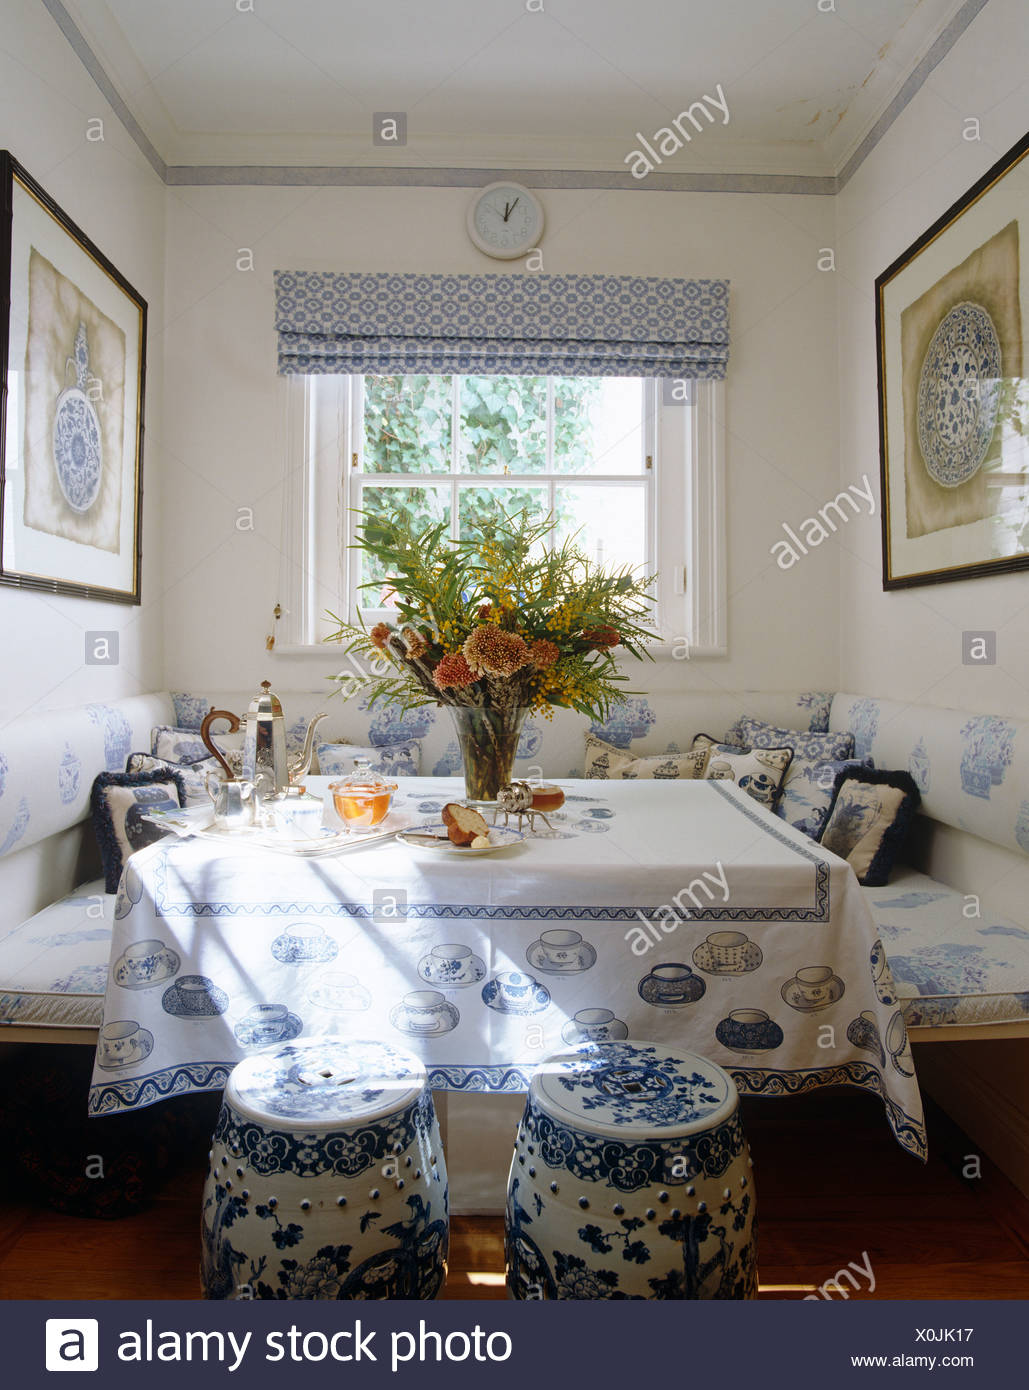 Blue+white Chinese pottery stools at table with teacup themed cloth and bench seating with blue+white cushions Stock Photo